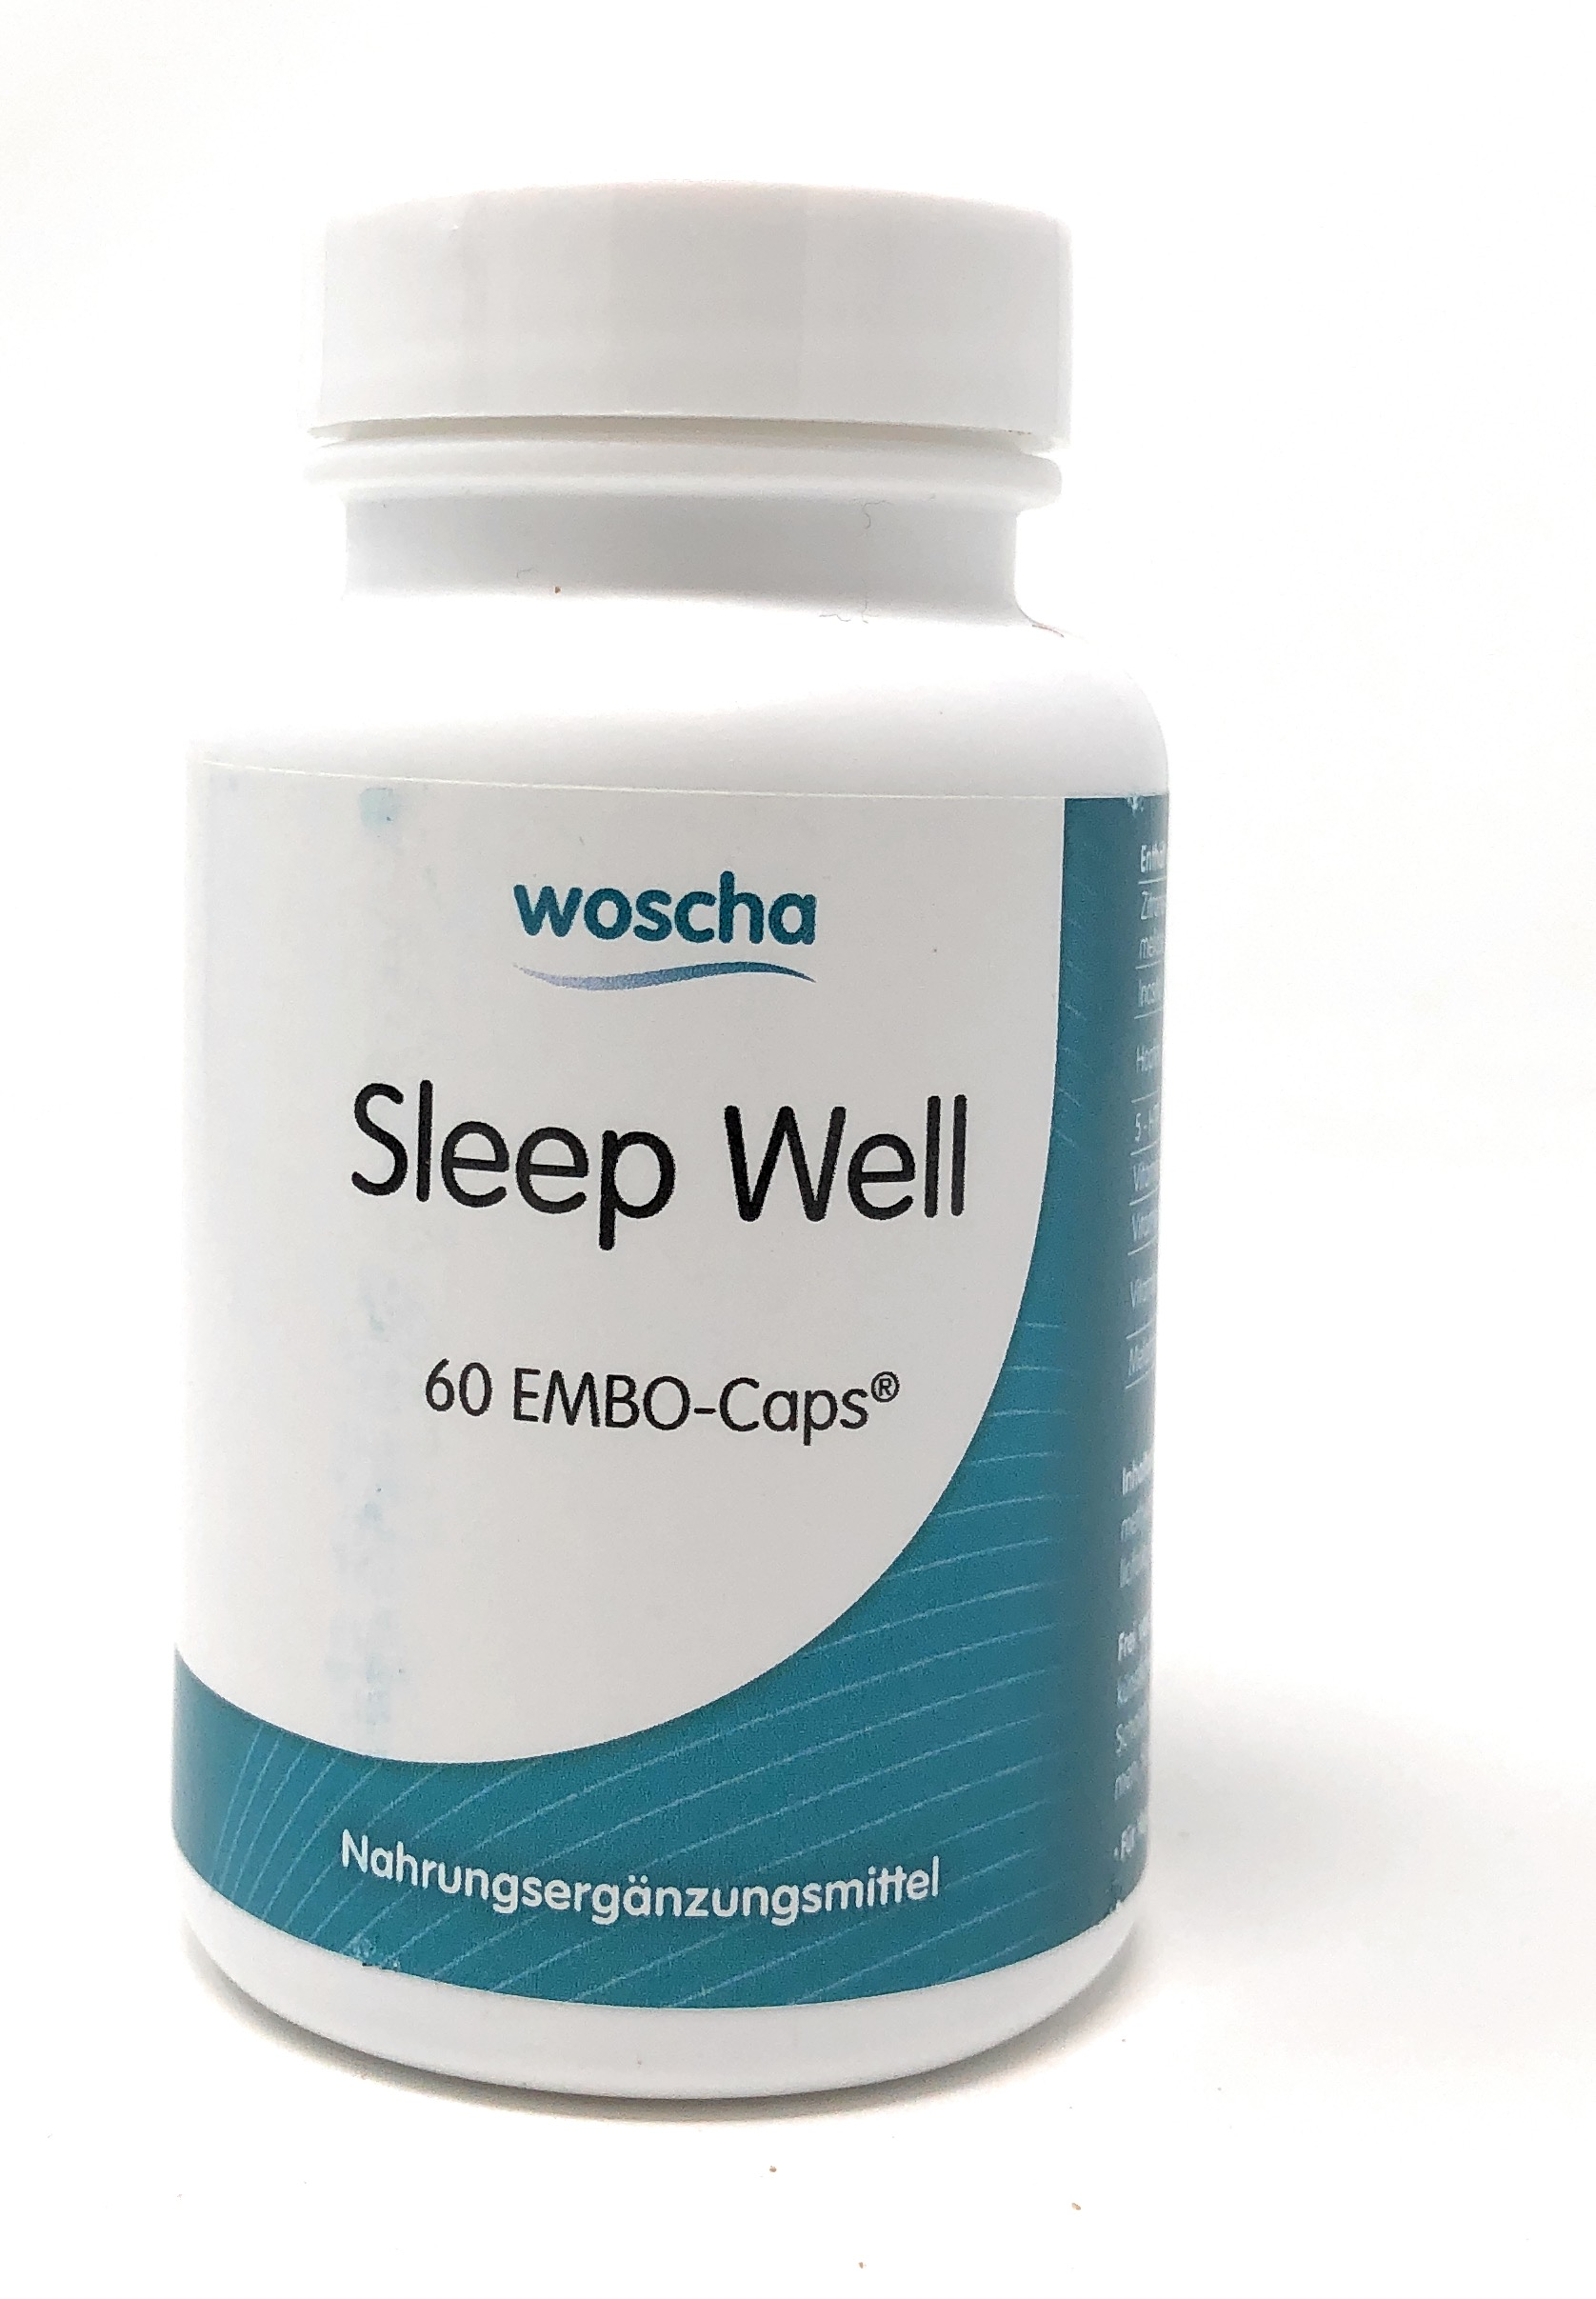 woscha Sleep Well 60 Embo-Caps (52g)(vegan)